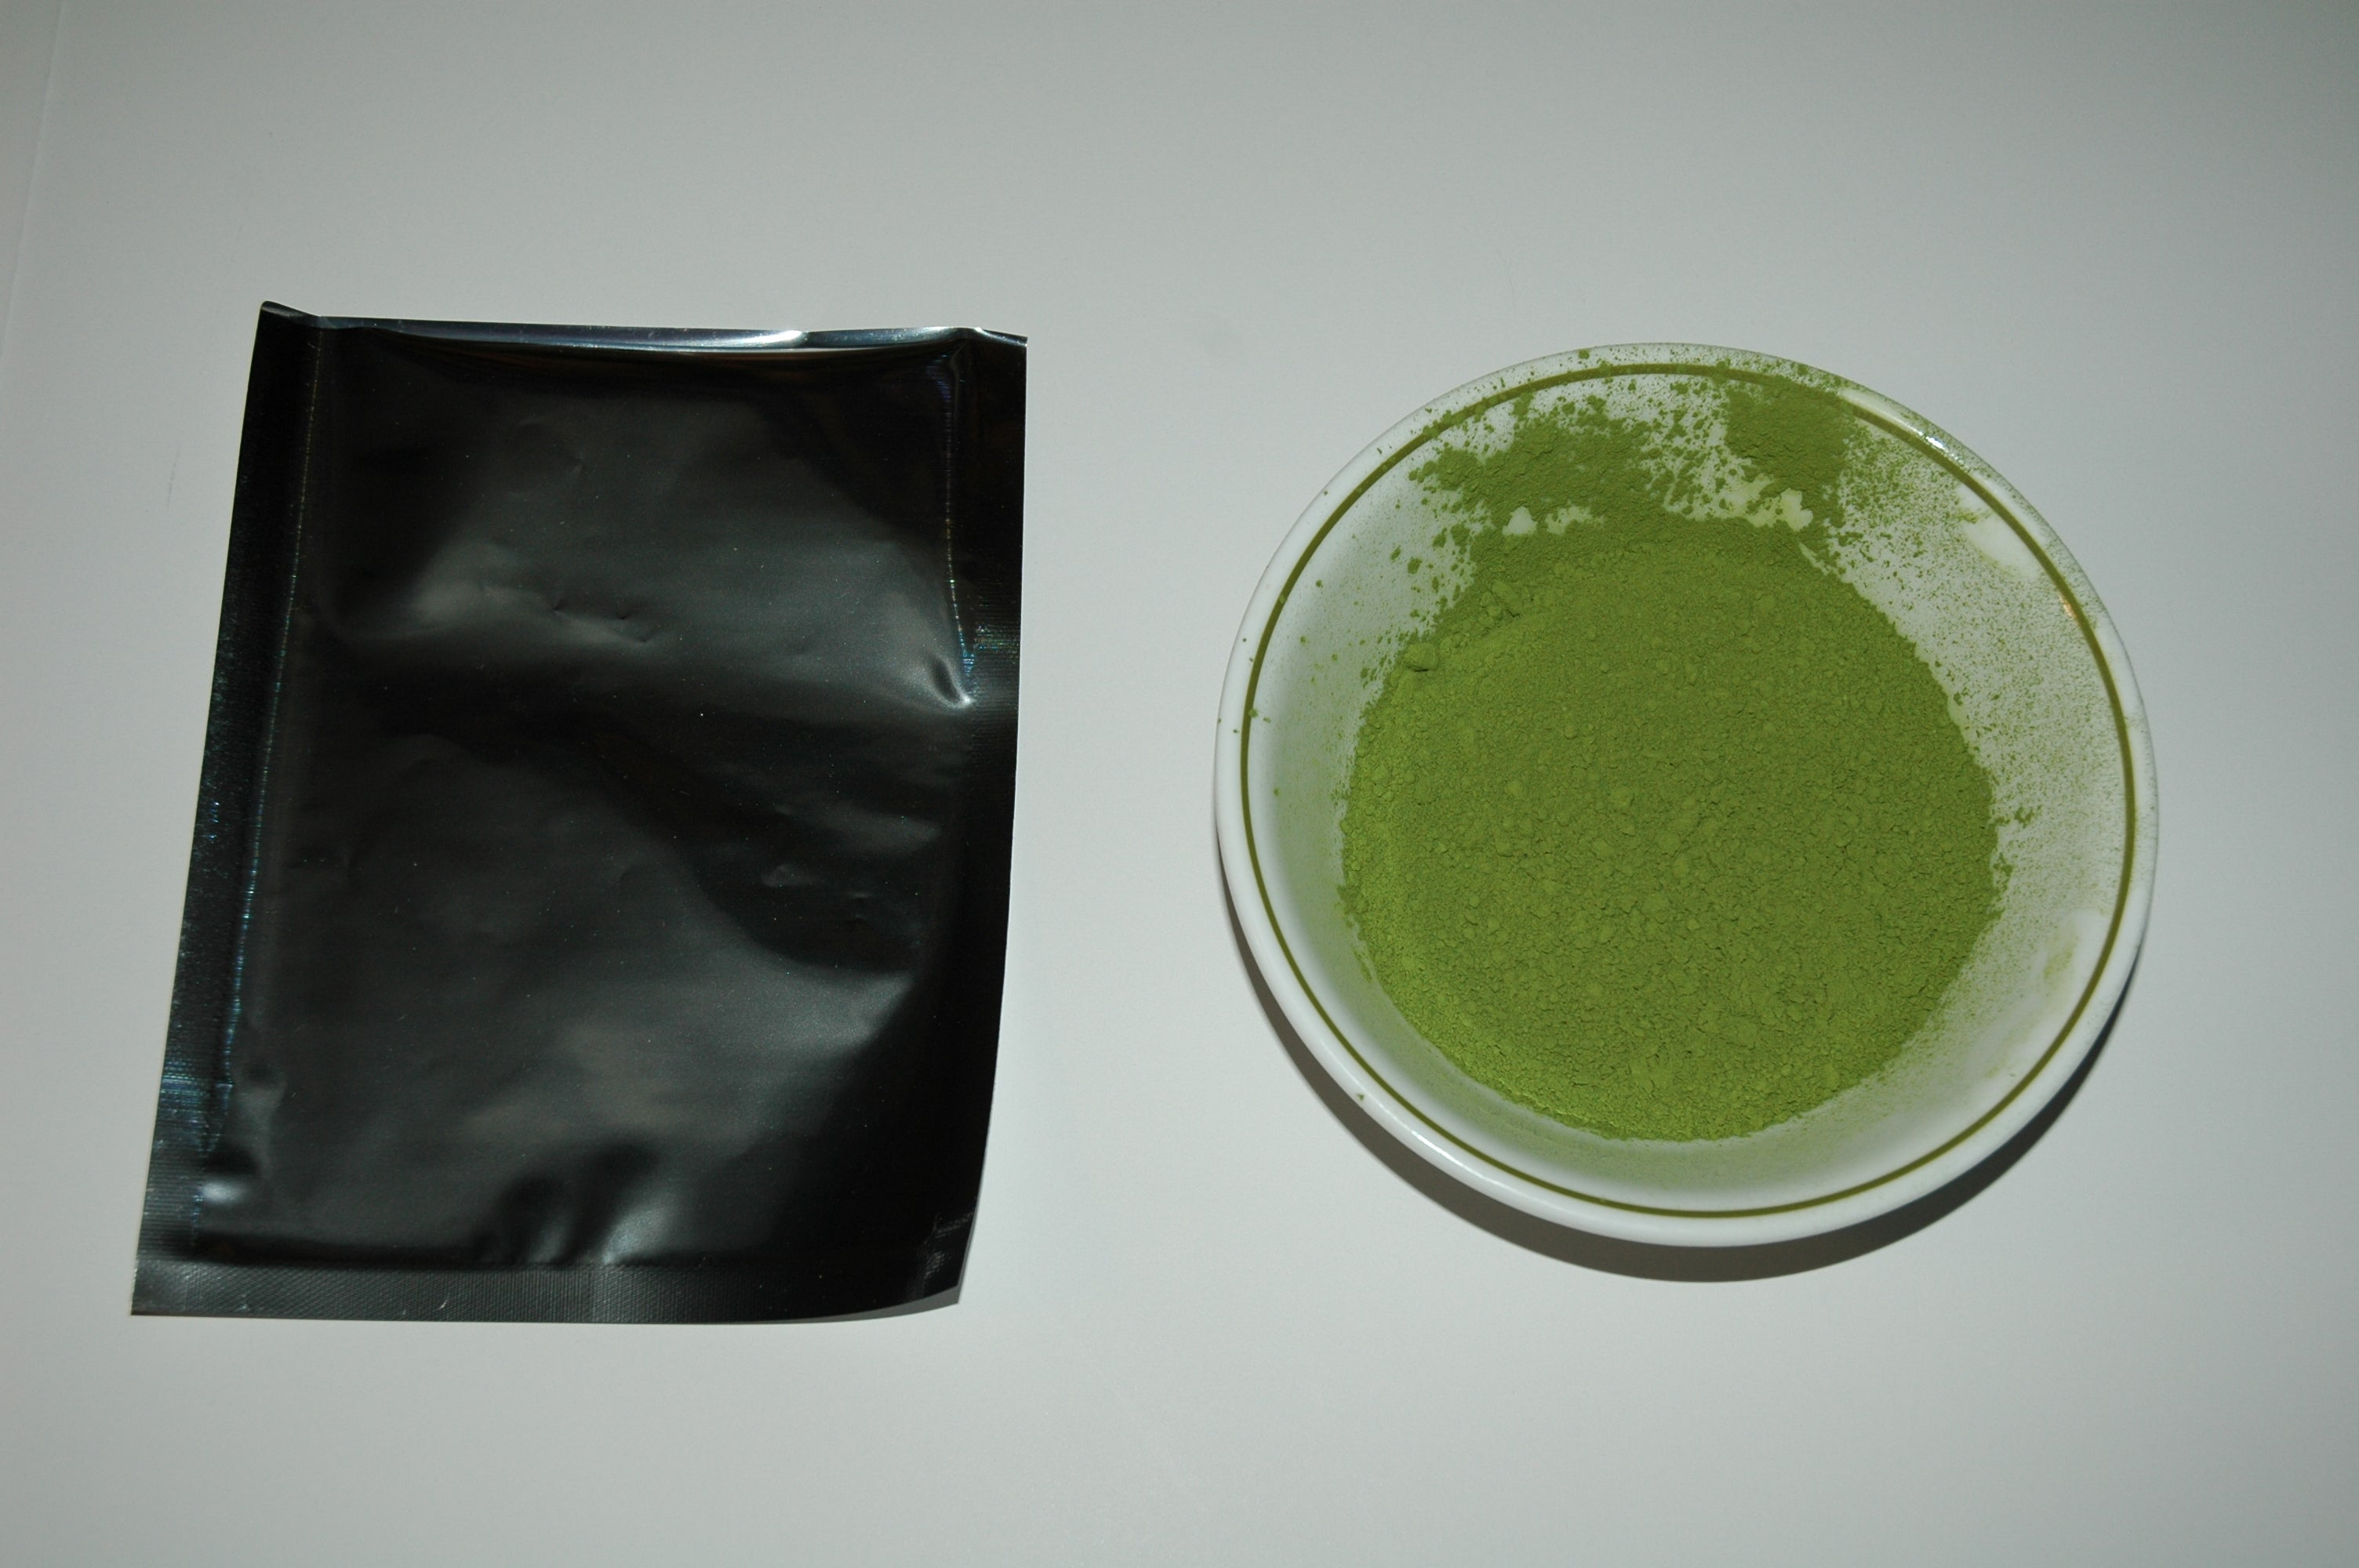 Matcha Green Tea Powder chocolate flavor 2 ounce bag